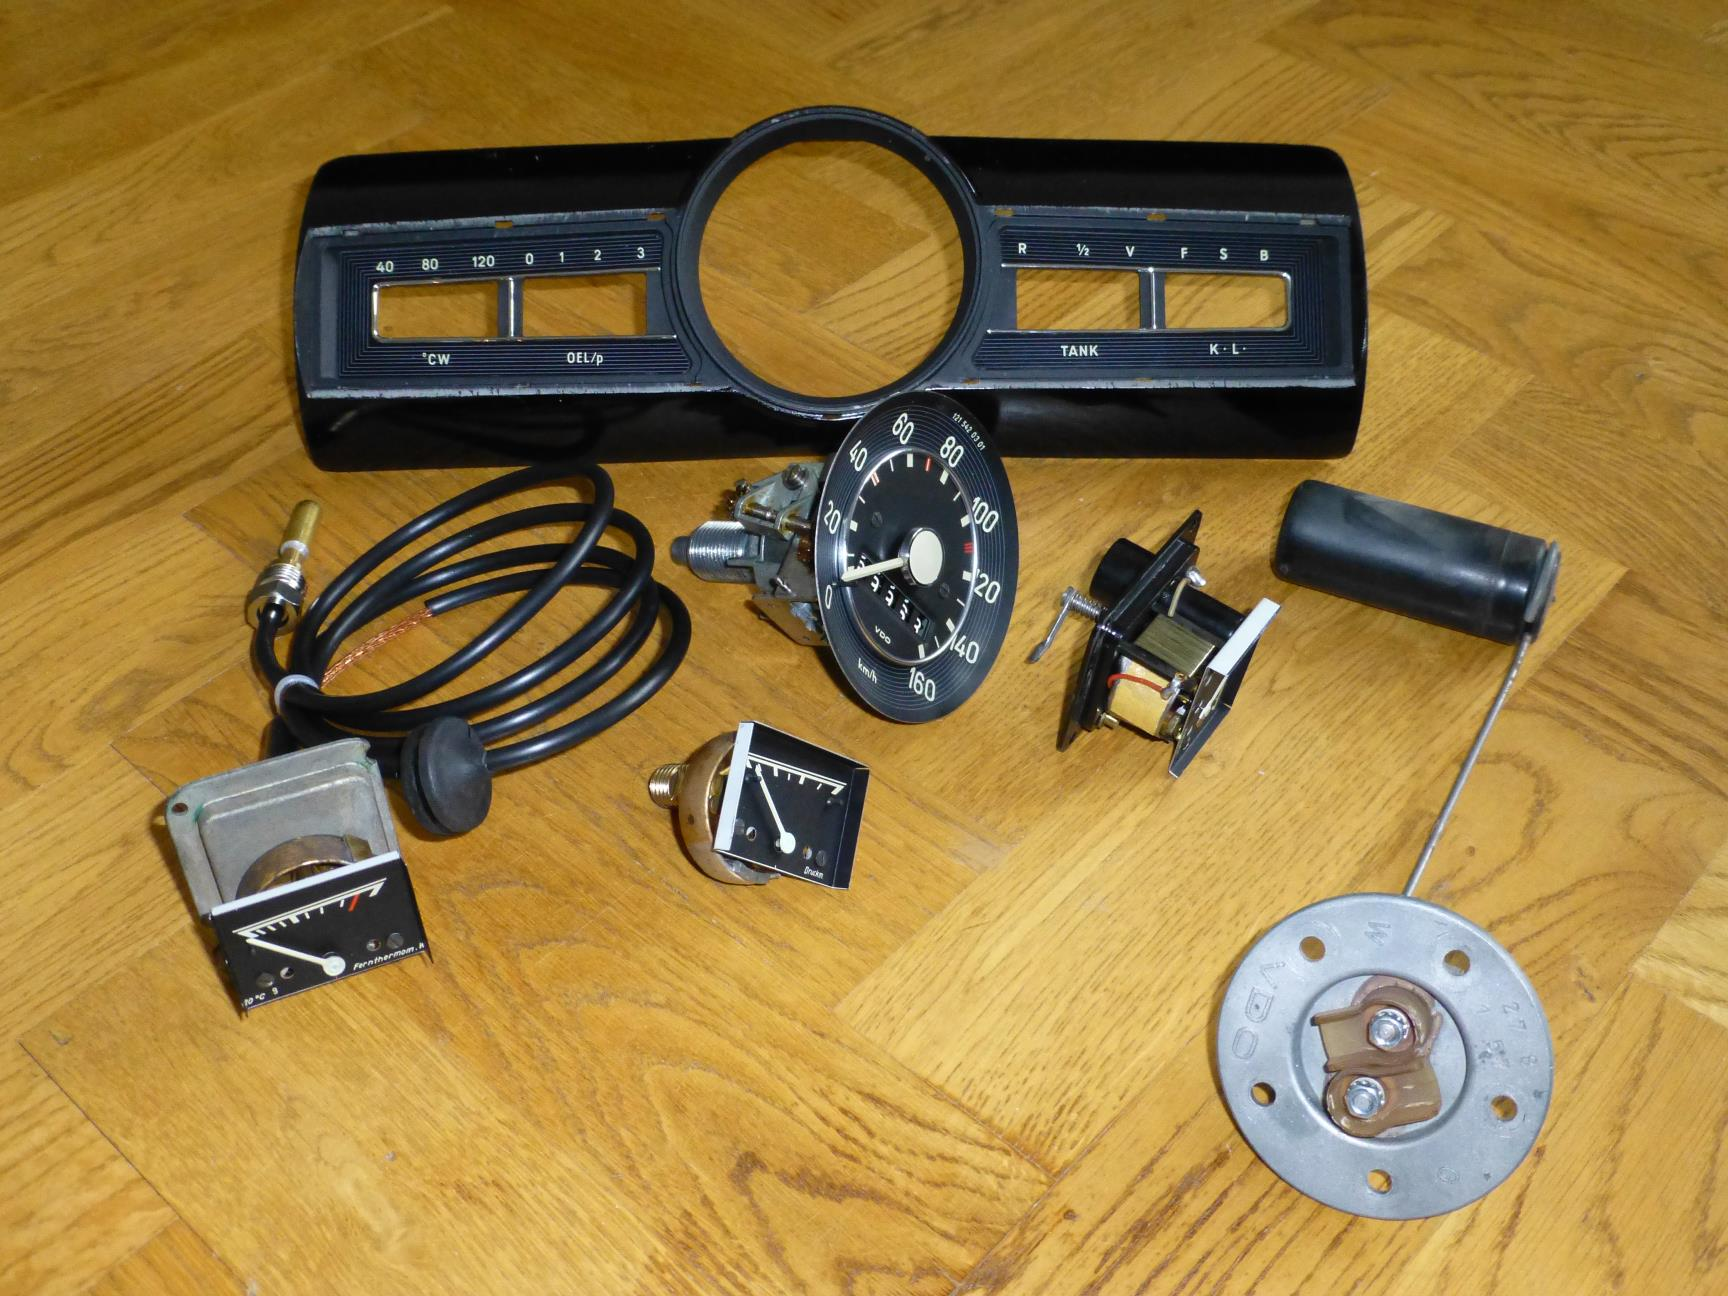 The front of a Mercedes-Benz 219 Ponton combi instrument and the parts that were restored by Ka-Ja Tachodienst